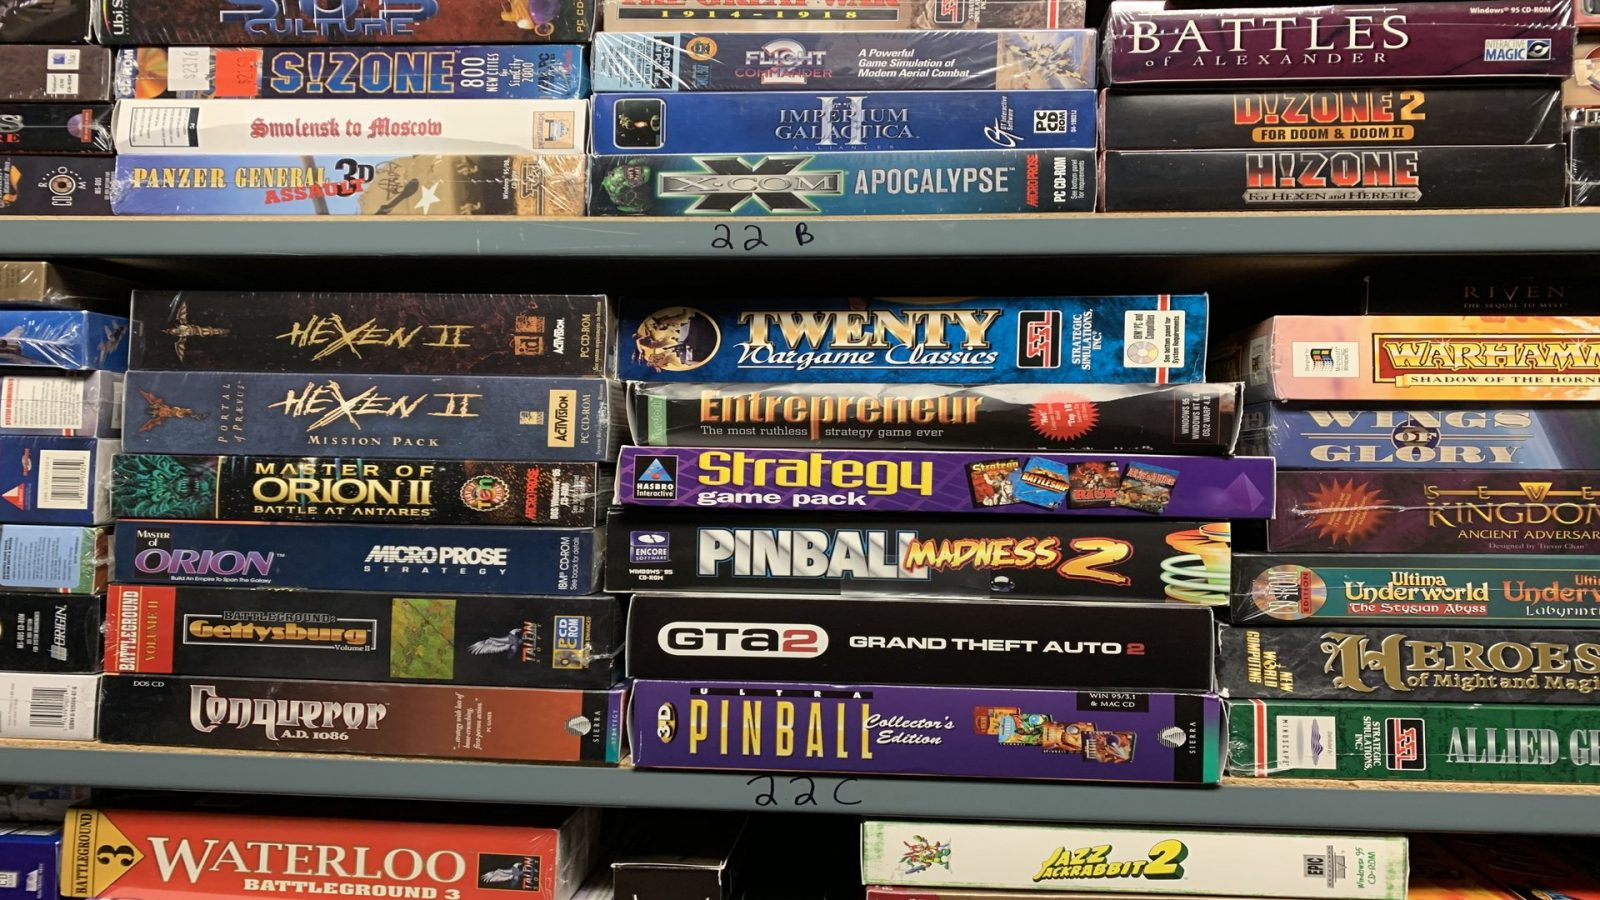 A Look At What May Be The World's Largest Game Collection